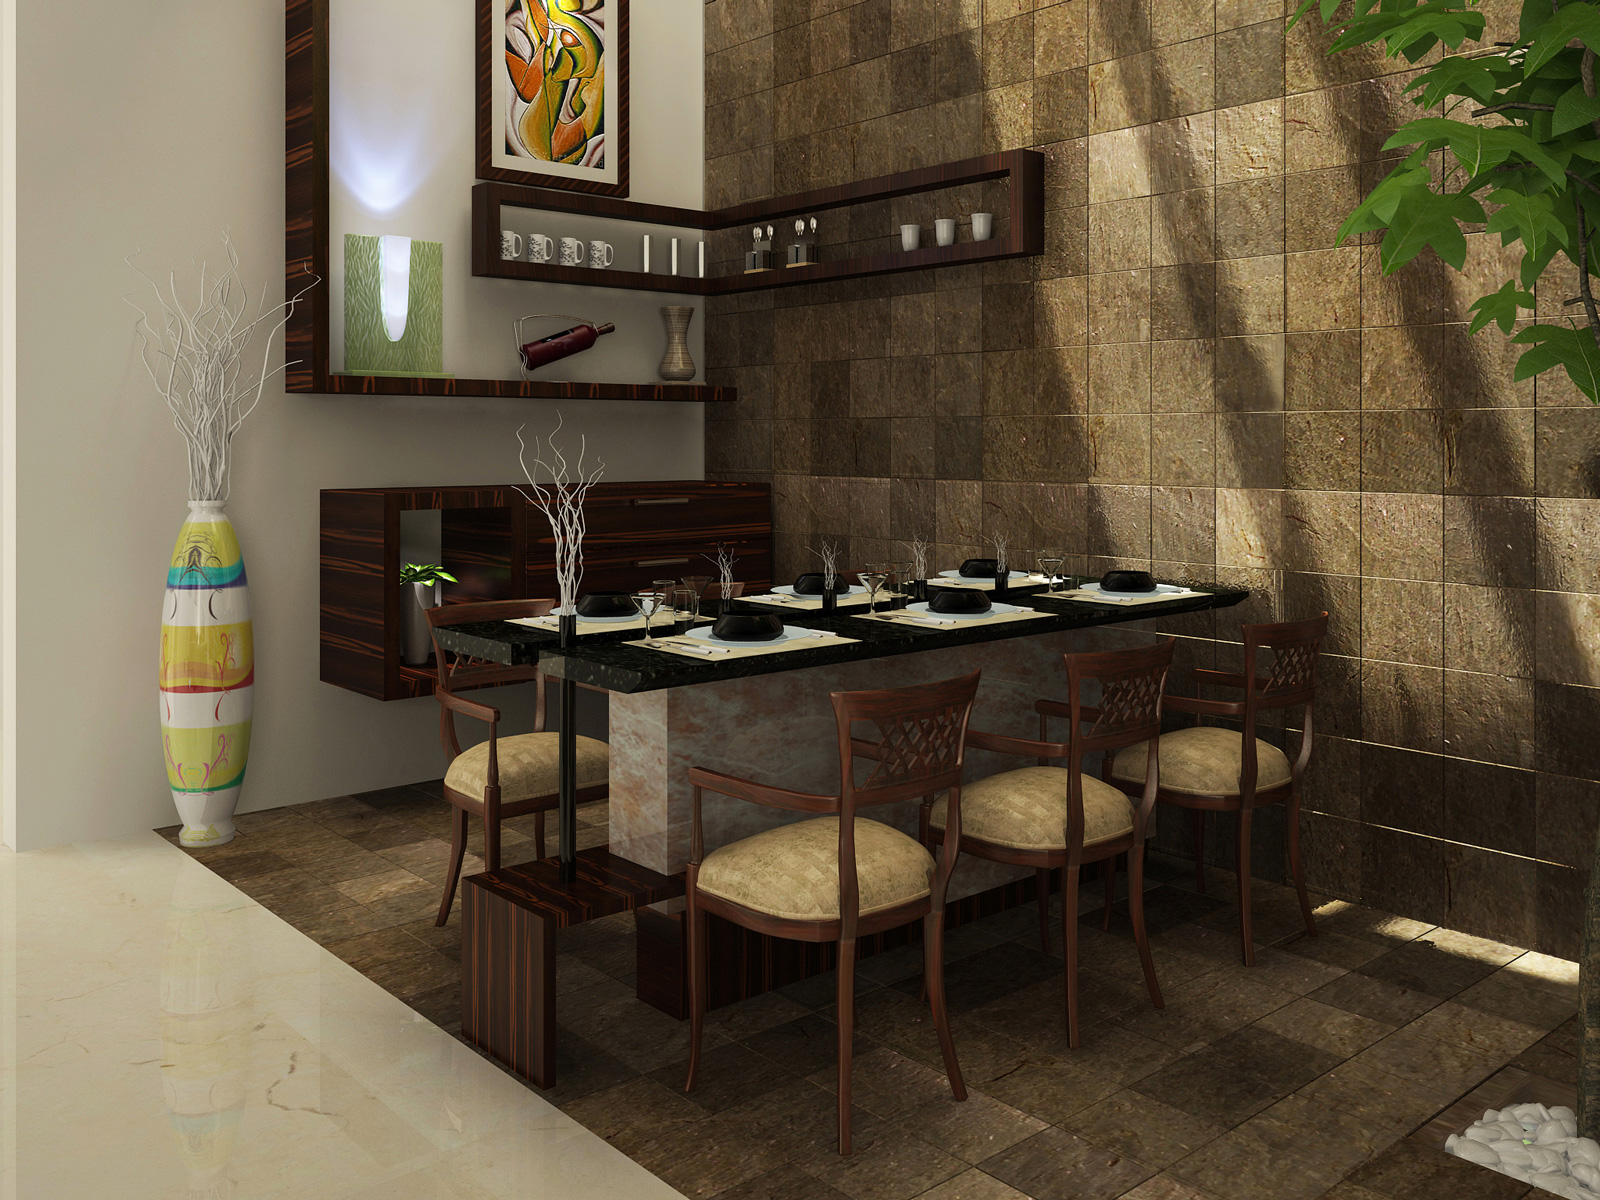 Dining kitchen living room interior designs kerala home for Room design of house